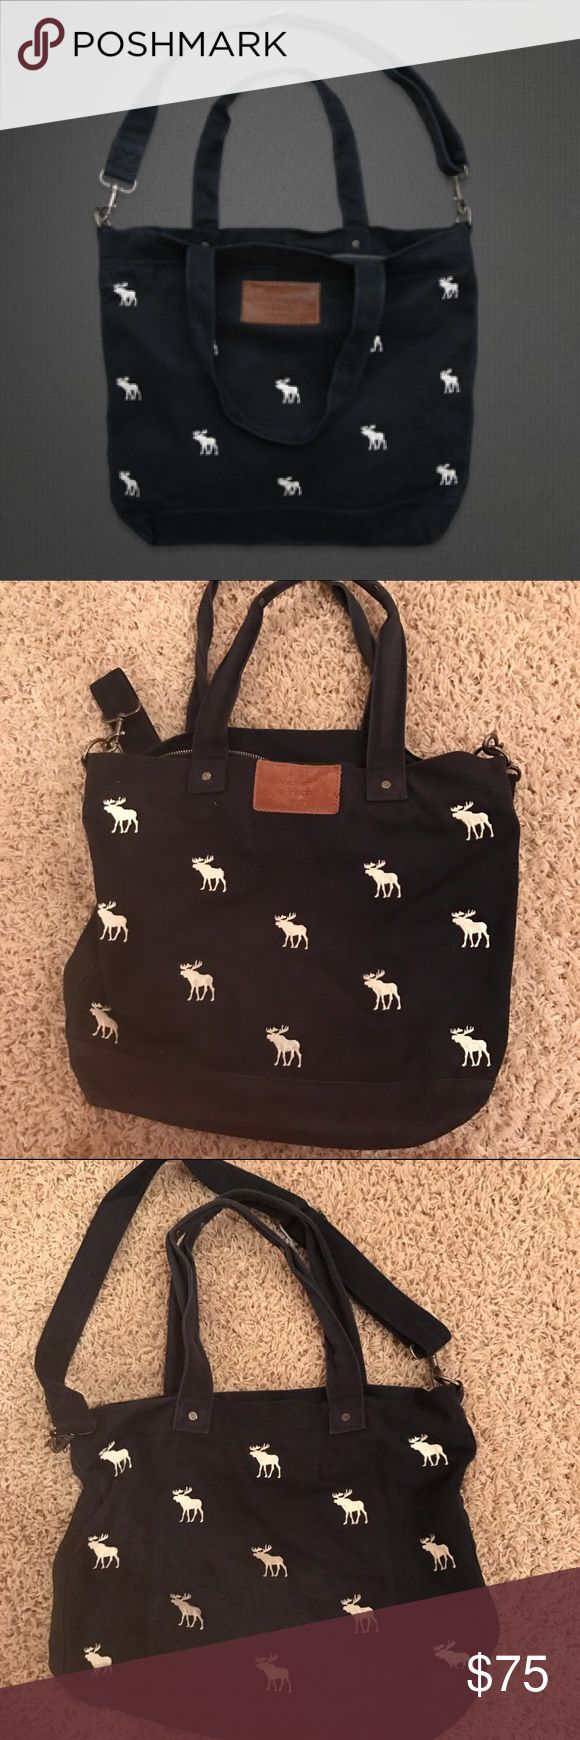 Abercrombie & Fitch Flagship Exclusive Tote Excellent condition. Lining is very clean. Moose pattern all over front and back of bag. Inside pocket. Crossbody strap. Zip closure. Abercrombie & Fitch Bags Totes